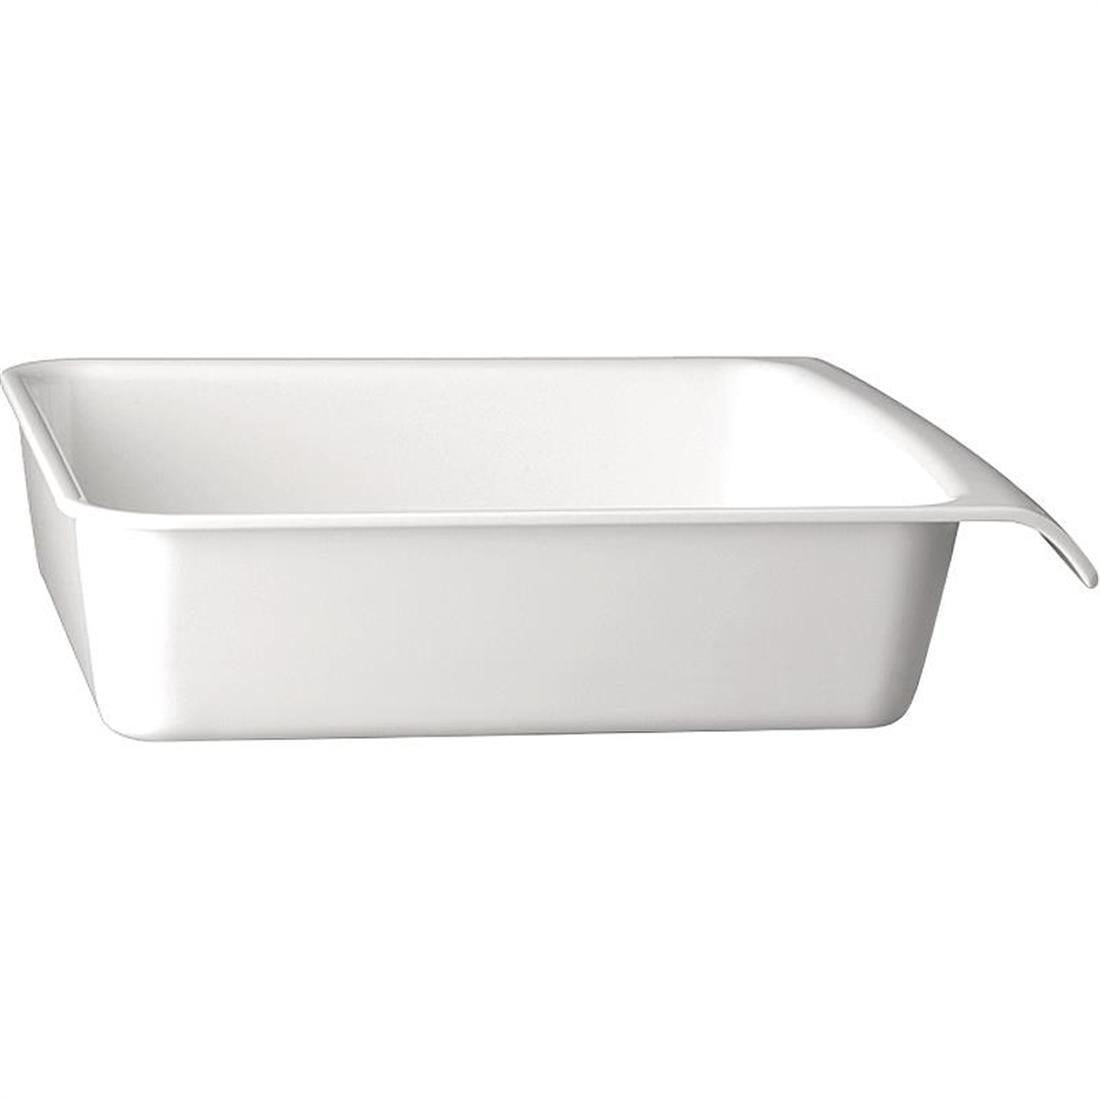 APS White 1/2GN Cascade Buffet Bowl - Each - GH400